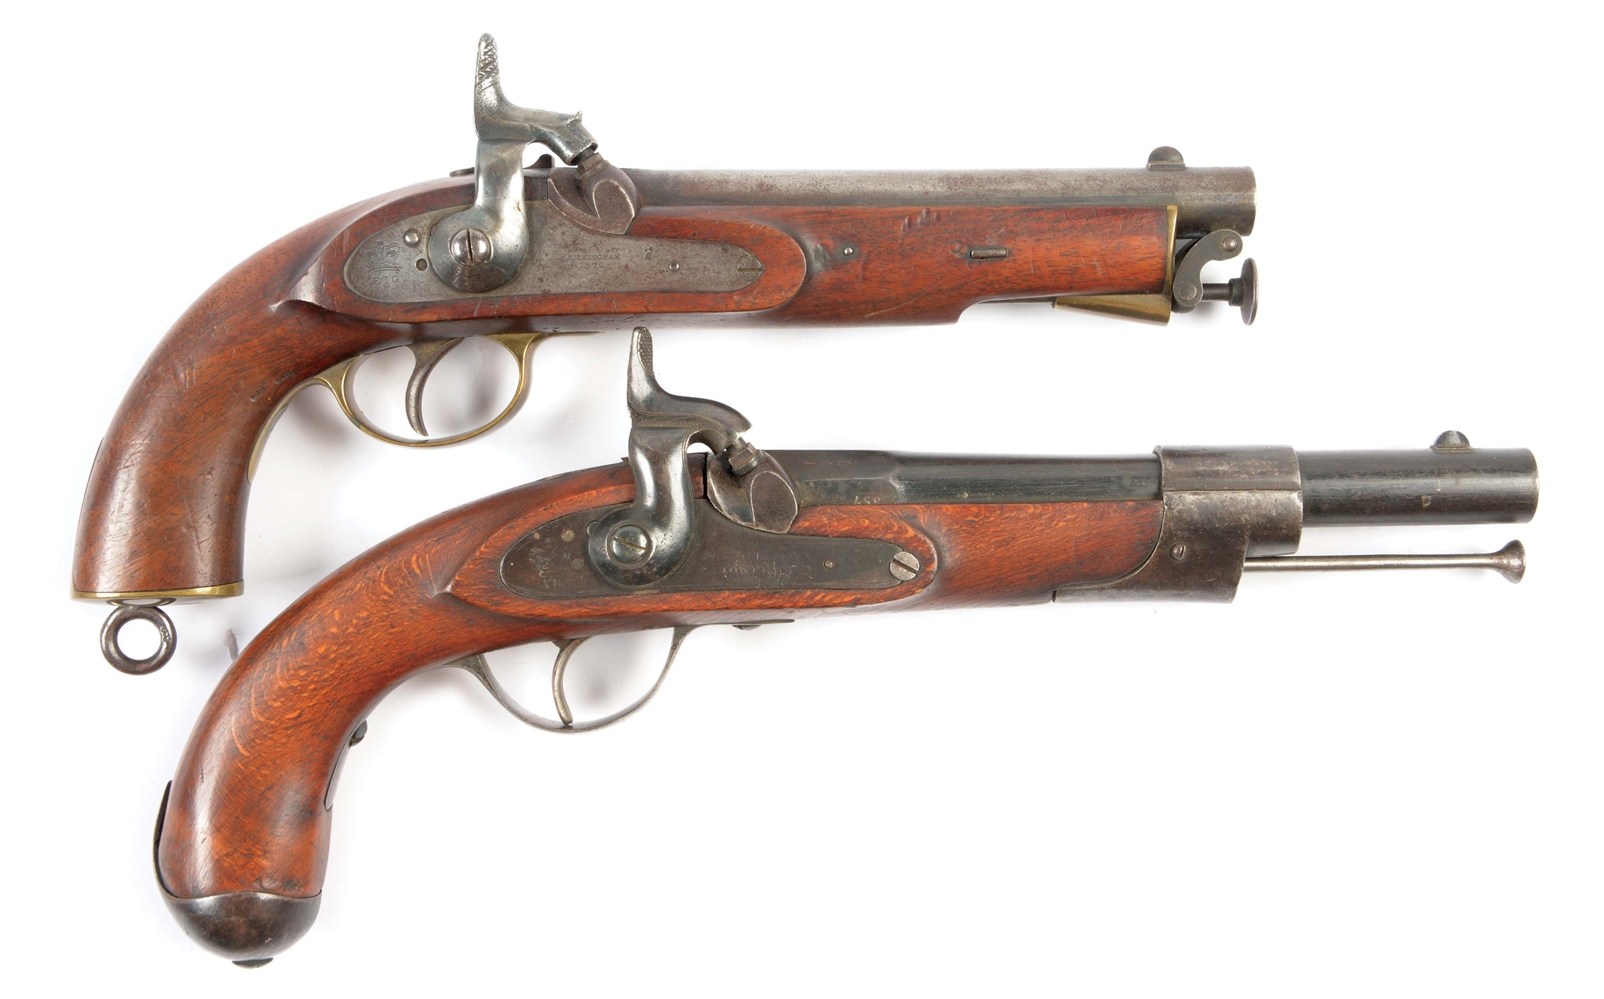 (A) LOT OF TWO: TWO SINGLE SHOT MILITARY STYLE PERCUSSION PISTOLS, ONE EAST INDIA COMPANY, THE OTHER A COMPOSITE WITH TOWER LOCK, BELGIAN BARREL.